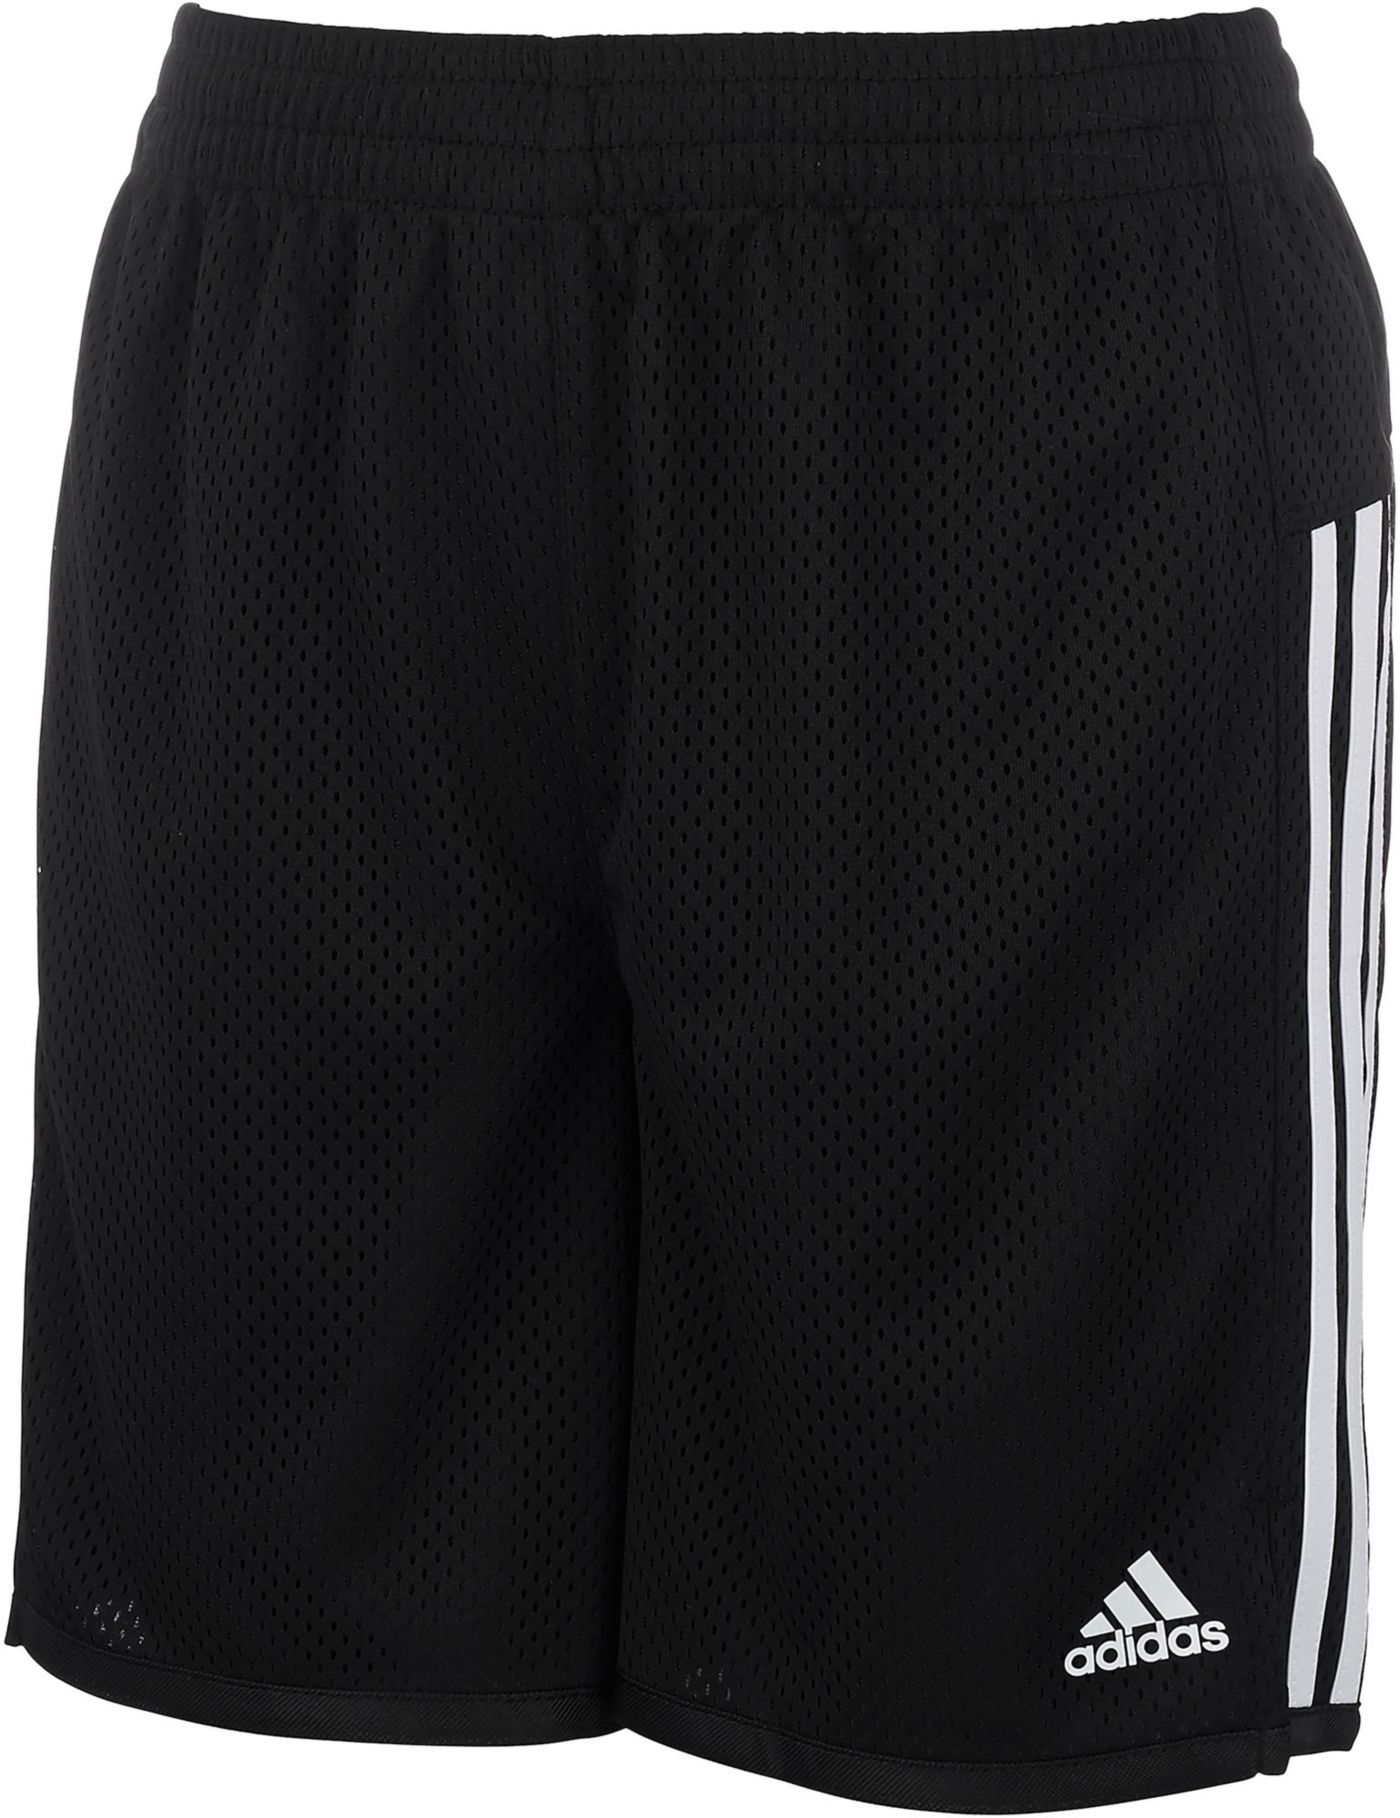 adidas Girls' 5'' Mesh Shorts